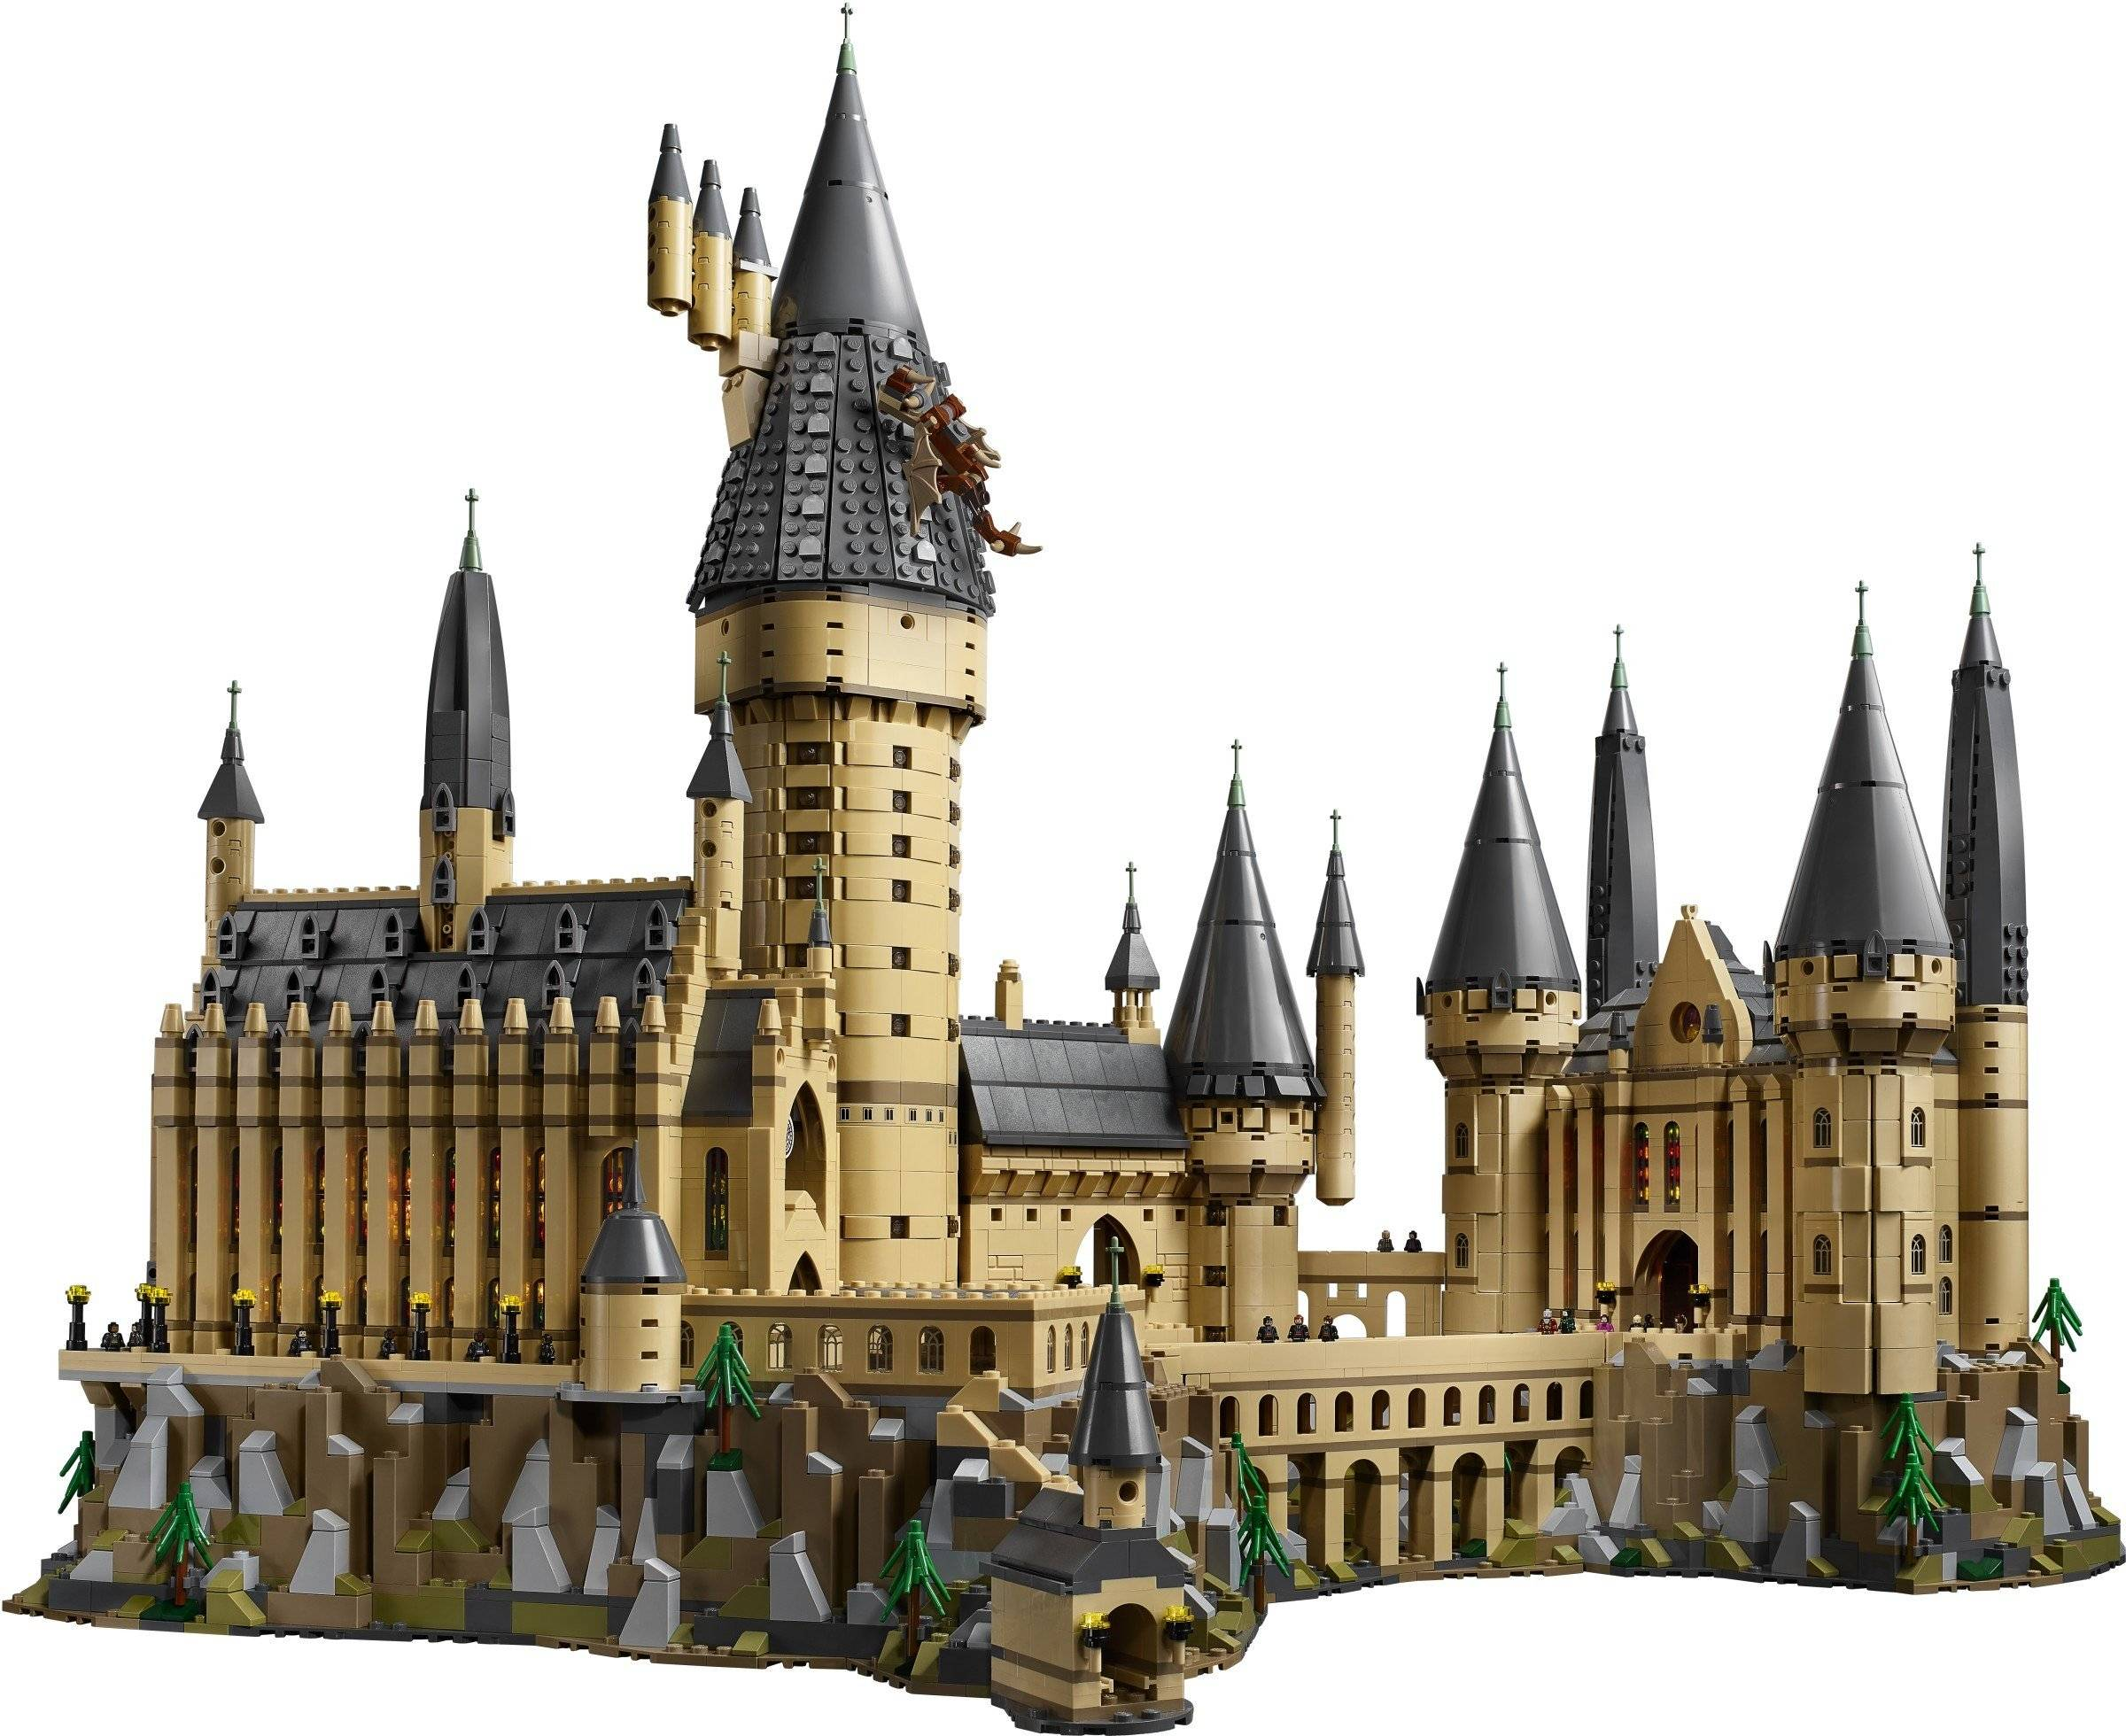 LEGO Hogwarts Castle 71043 set: The Detailed Review